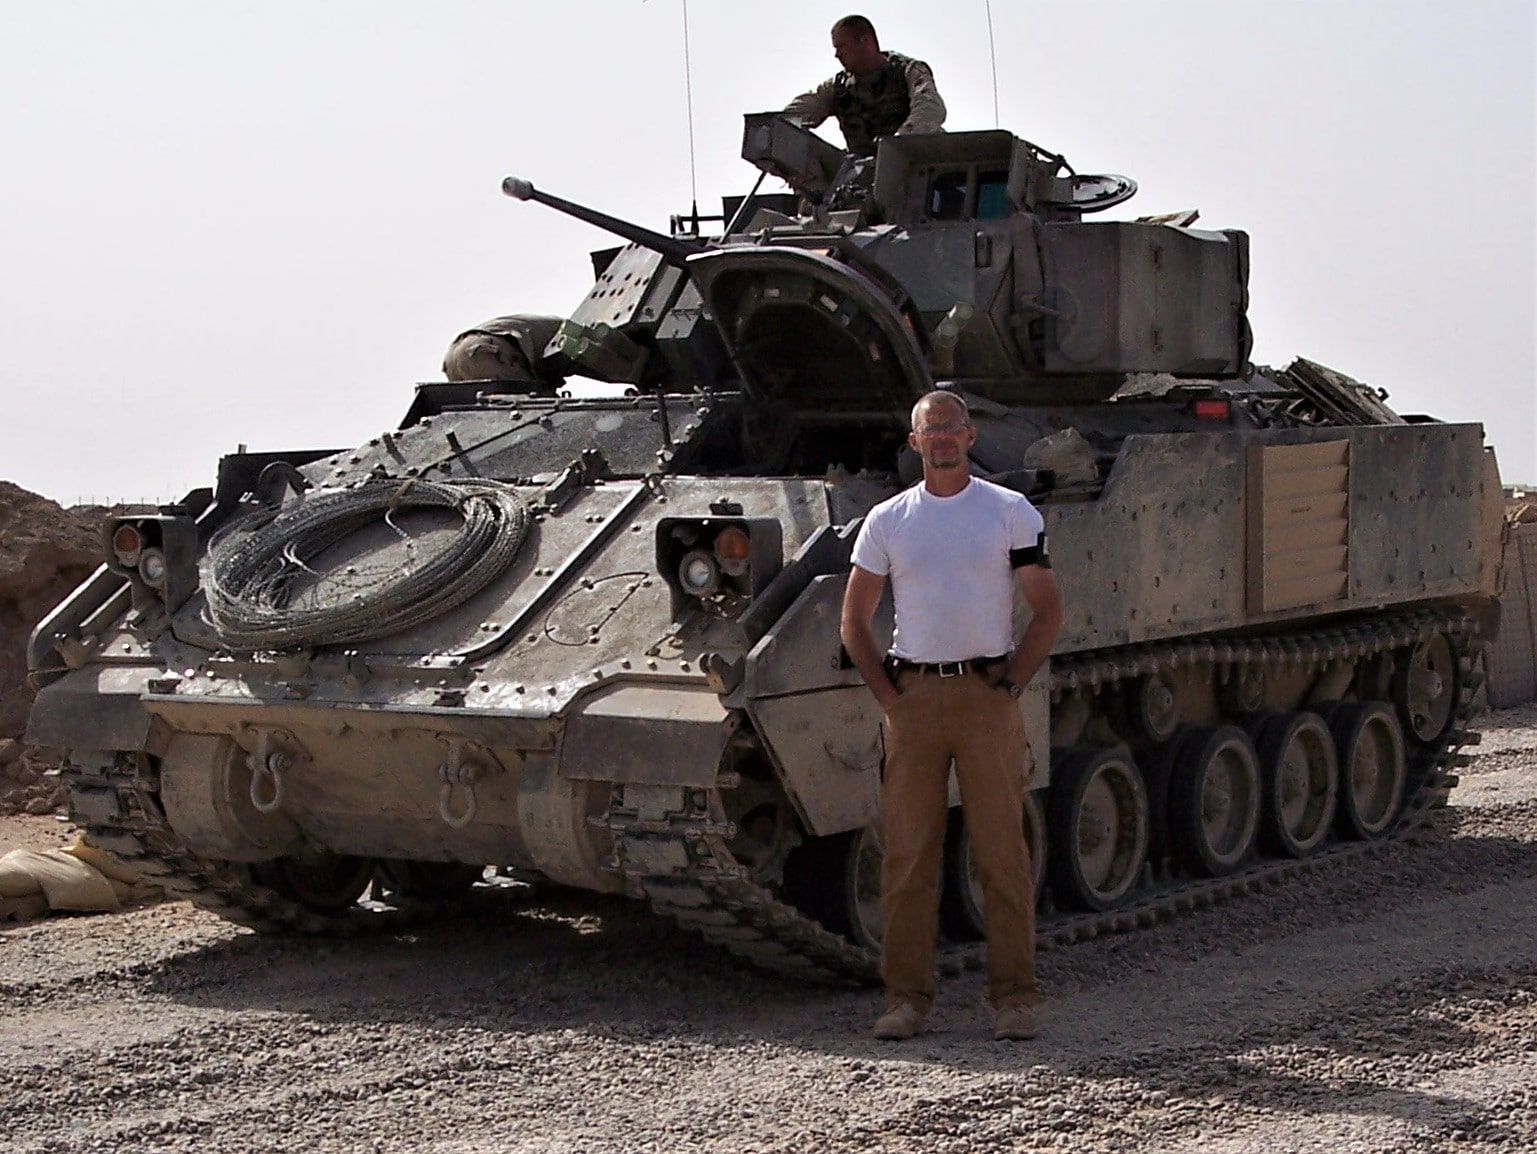 Paul Barnard stands in front of a tank at a military base.